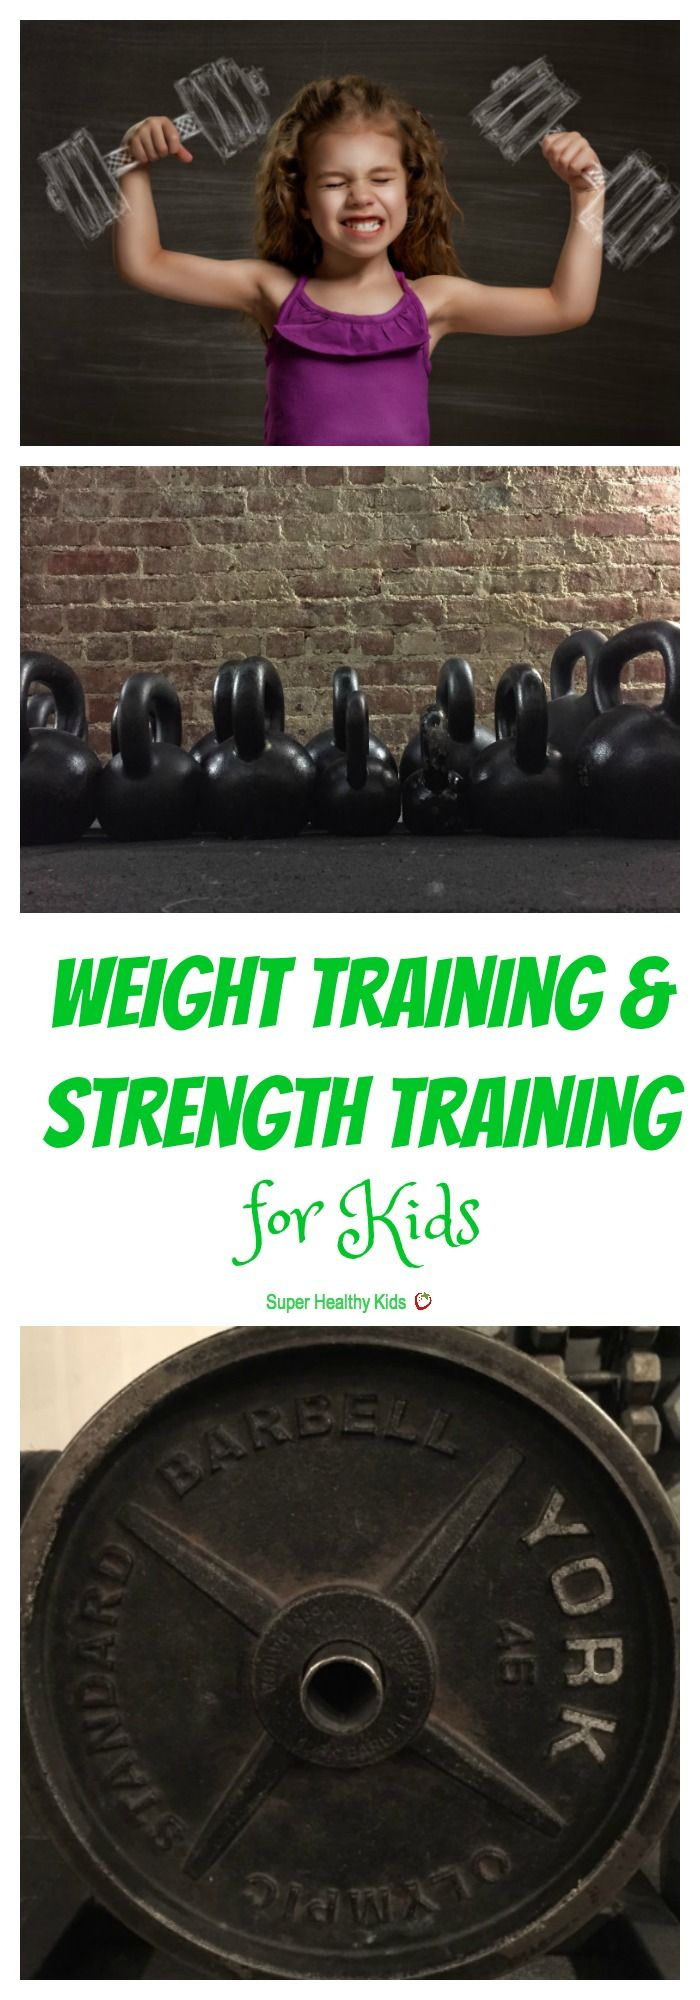 Should kids lift weights for exercise??